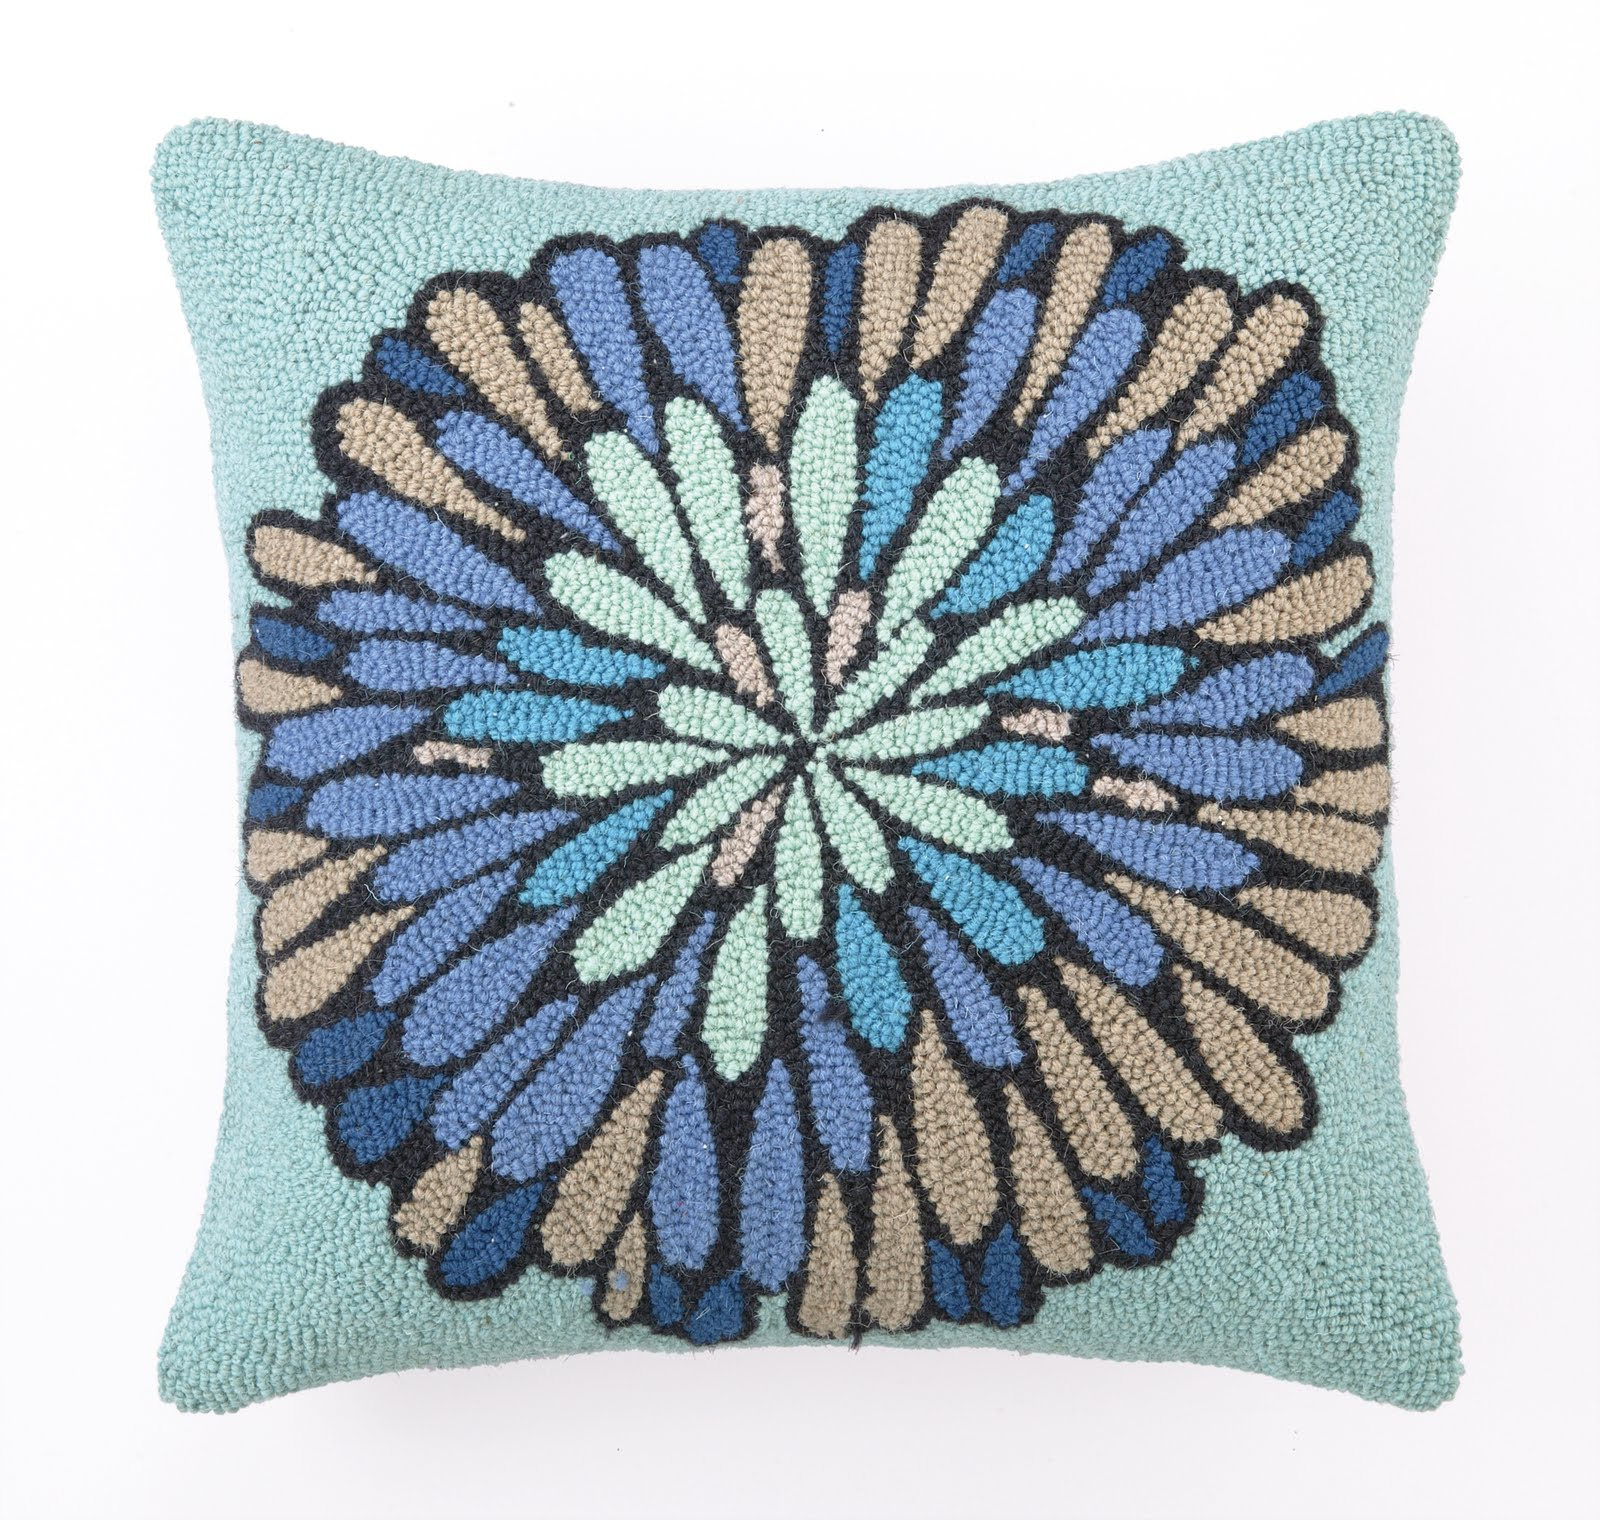 Throw Pillows With Matching Rug : Gift & Home Today: Throw rugs and matching pillows by Valori Wells